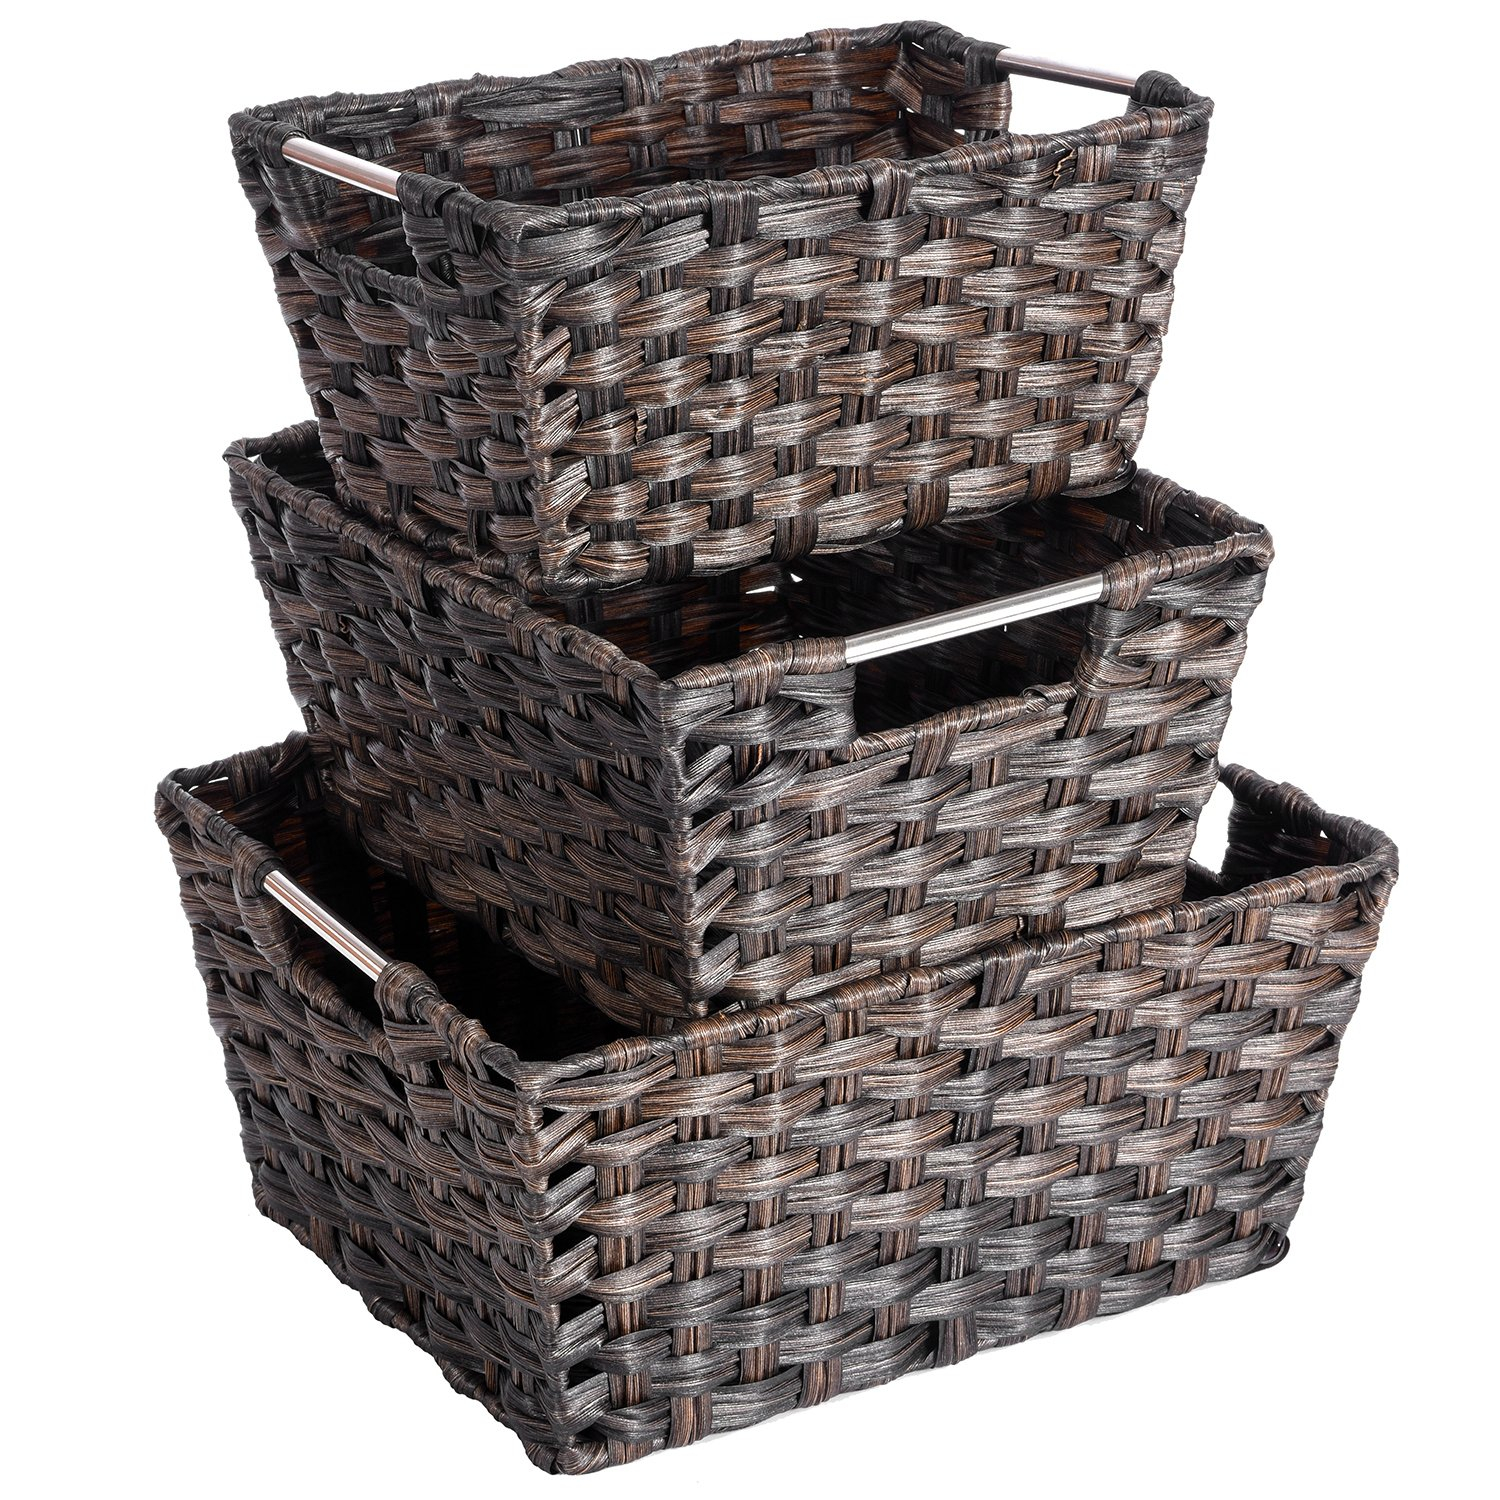 Woven Baskets Maidmax Rectangular Rattan Storage Baskets With Metal Handles For Living Room Bedroom Bathroom Kitchen Home Office Nursery Set Of 3 within measurements 1500 X 1500